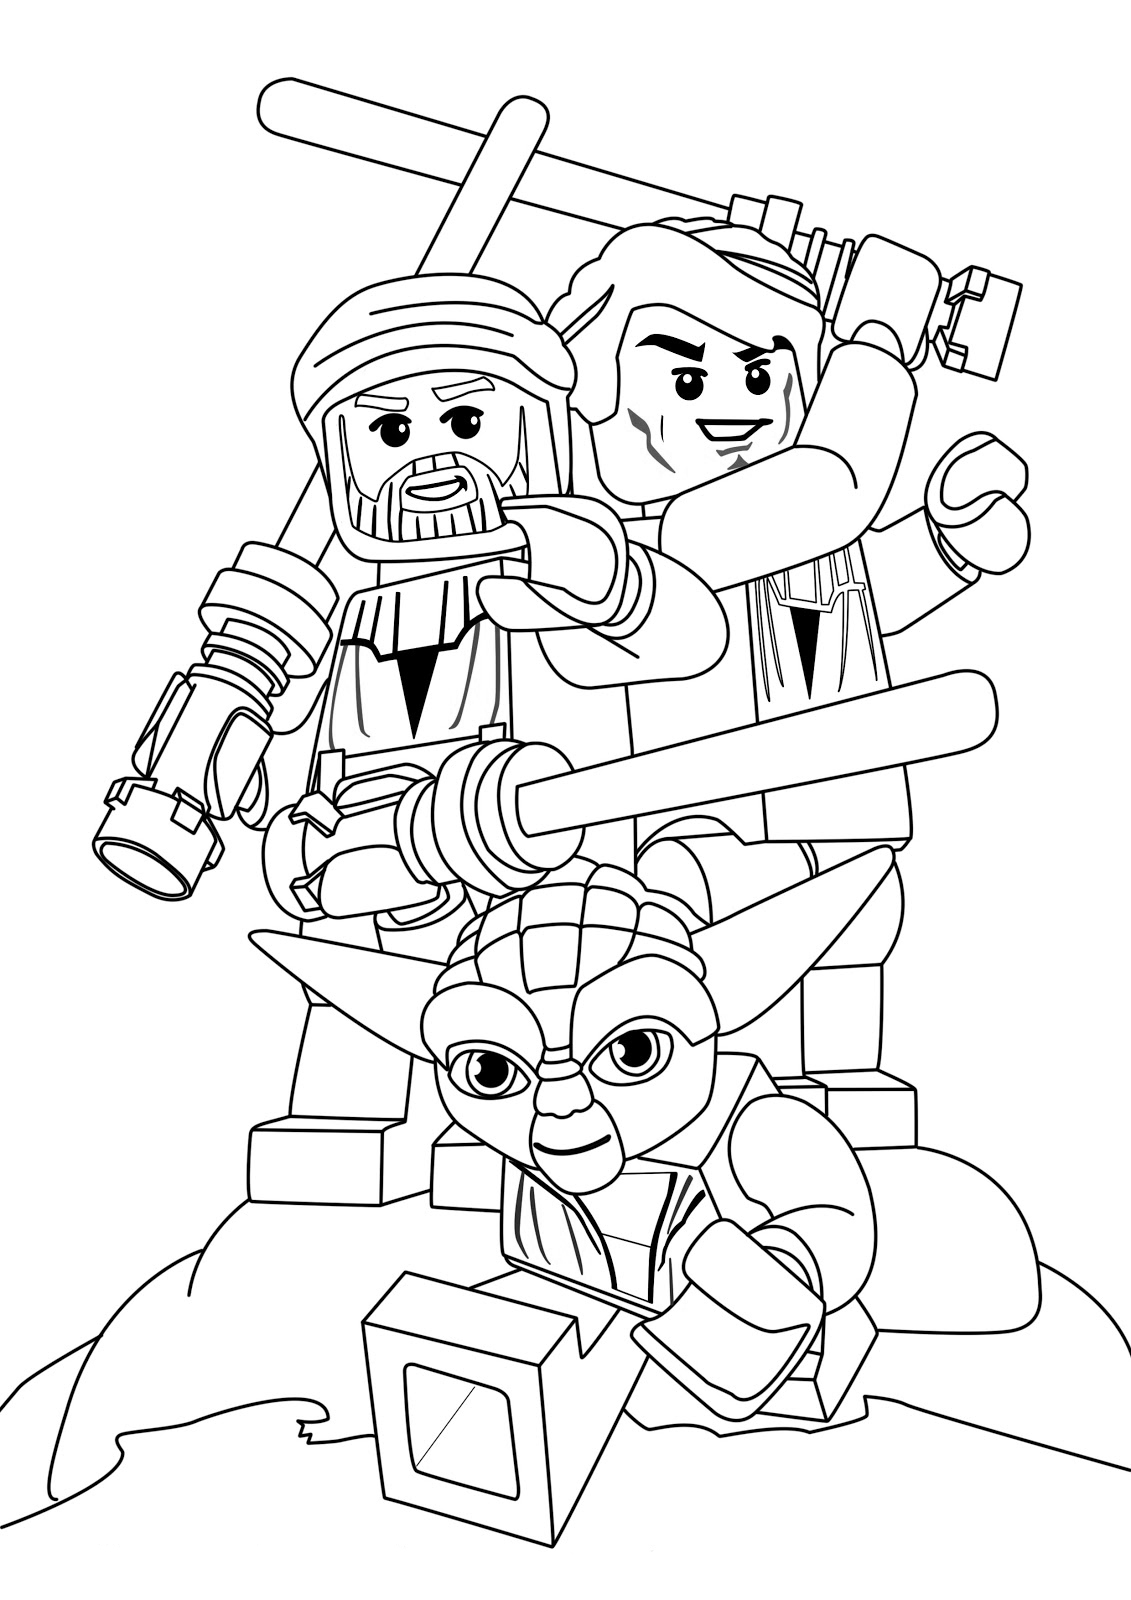 lego star wars coloring pages printable lego star wars coloring pages best coloring pages for kids pages coloring star lego printable wars